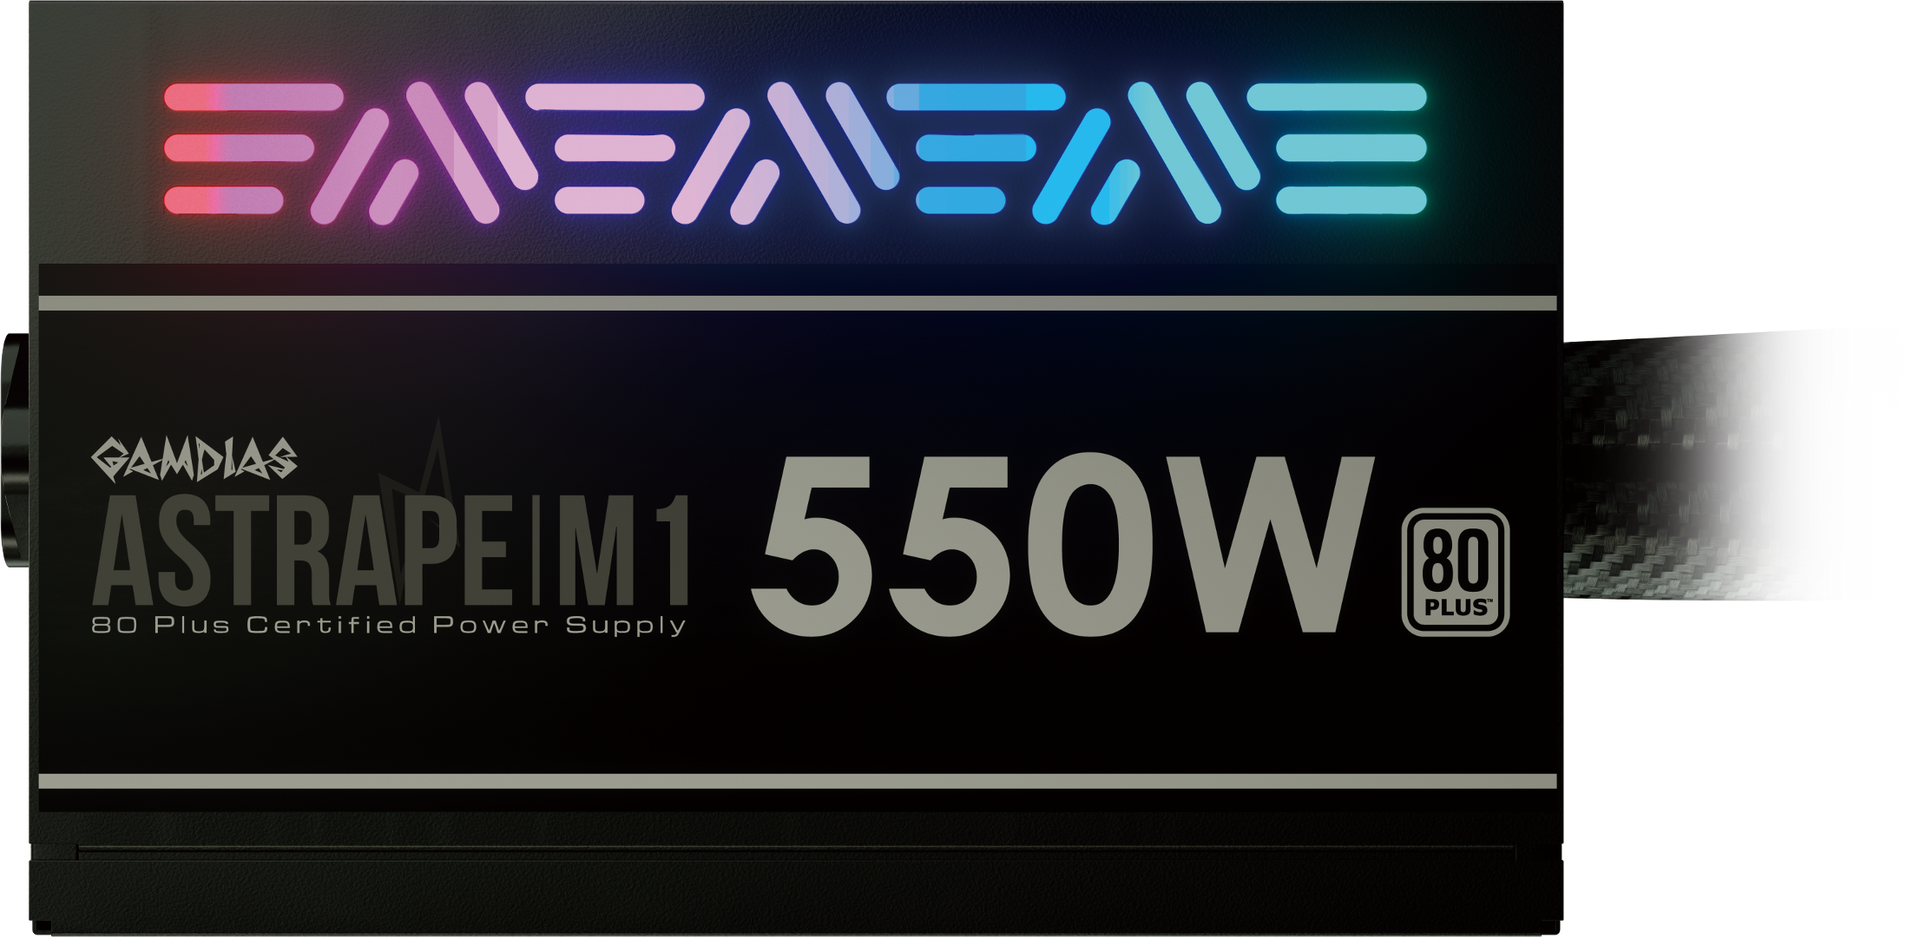 ASTRAPE_M1_SIDE_550W-1080p.png